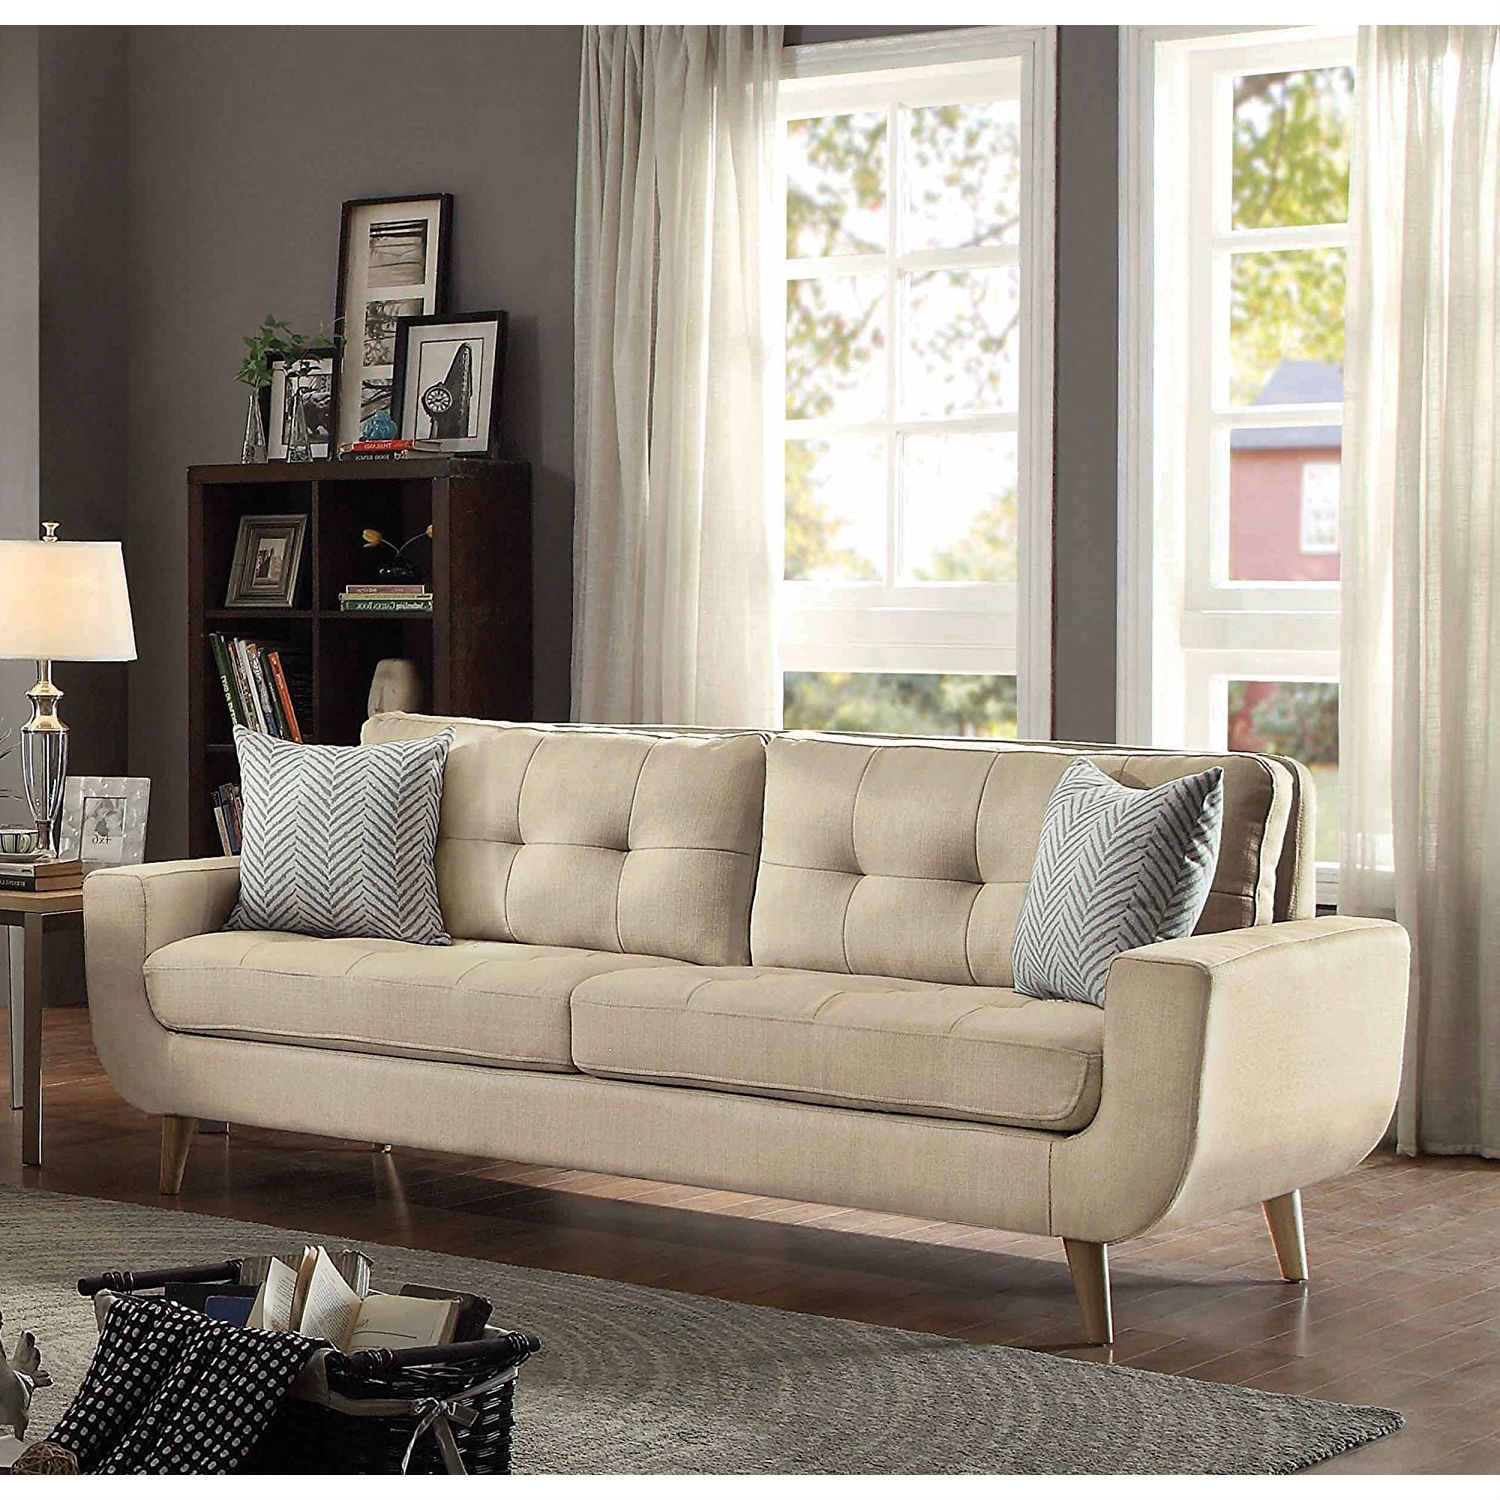 Couch Storage in and around Johannesburg | XtraSpace